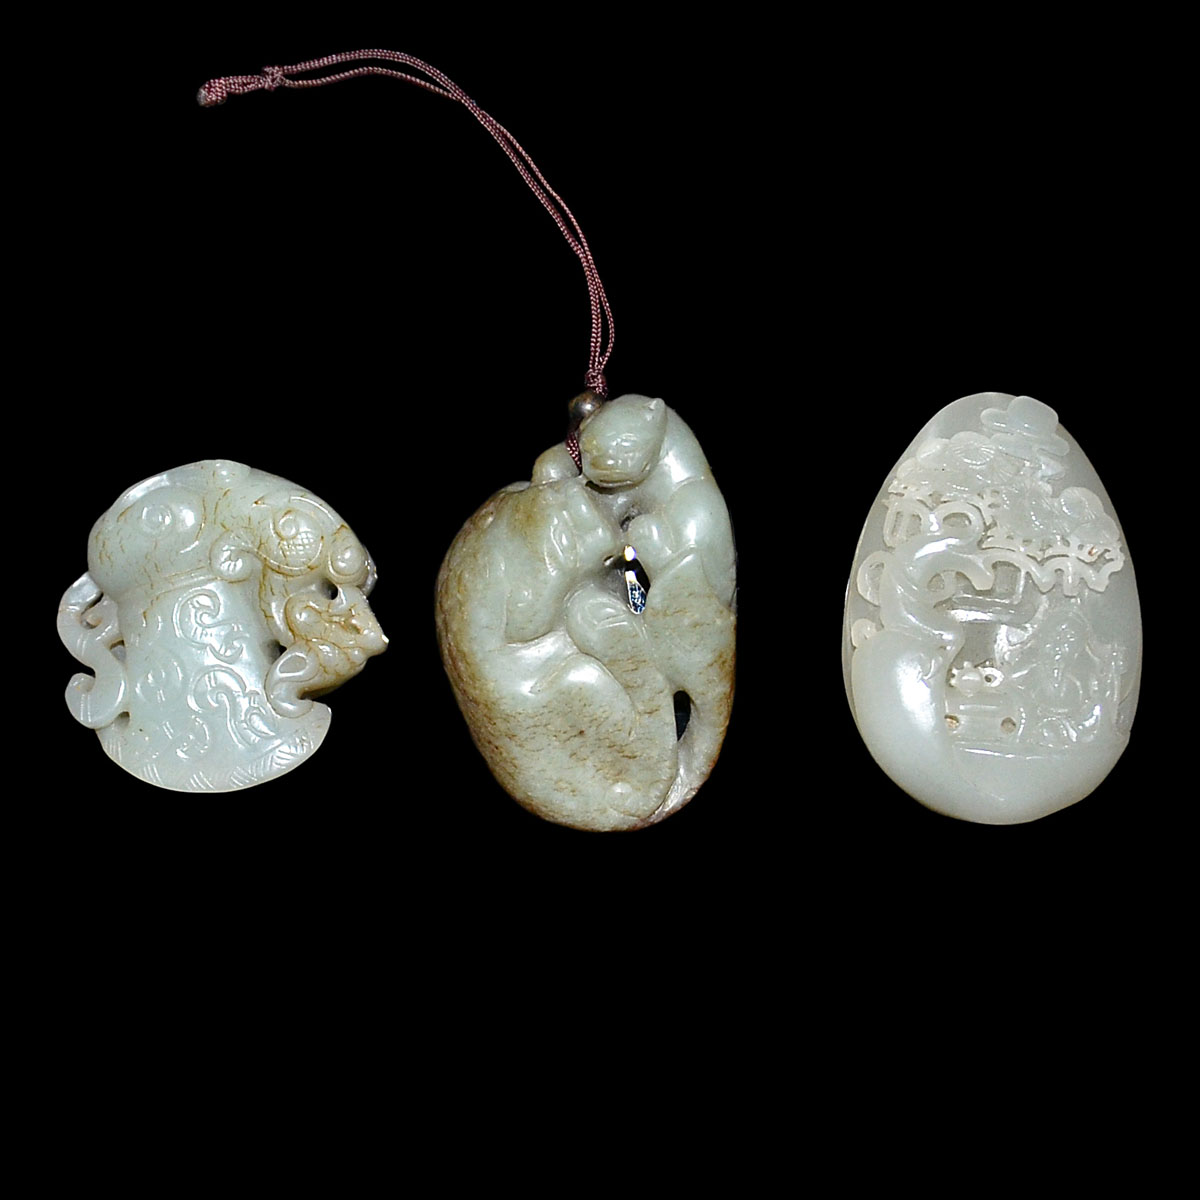 玉雕把玩掛飾一組三件 A Group of Three Jade Pebble and Pendant Carvings. Height: 2⅛ - 2¾ in (5.4 - 7 cm)